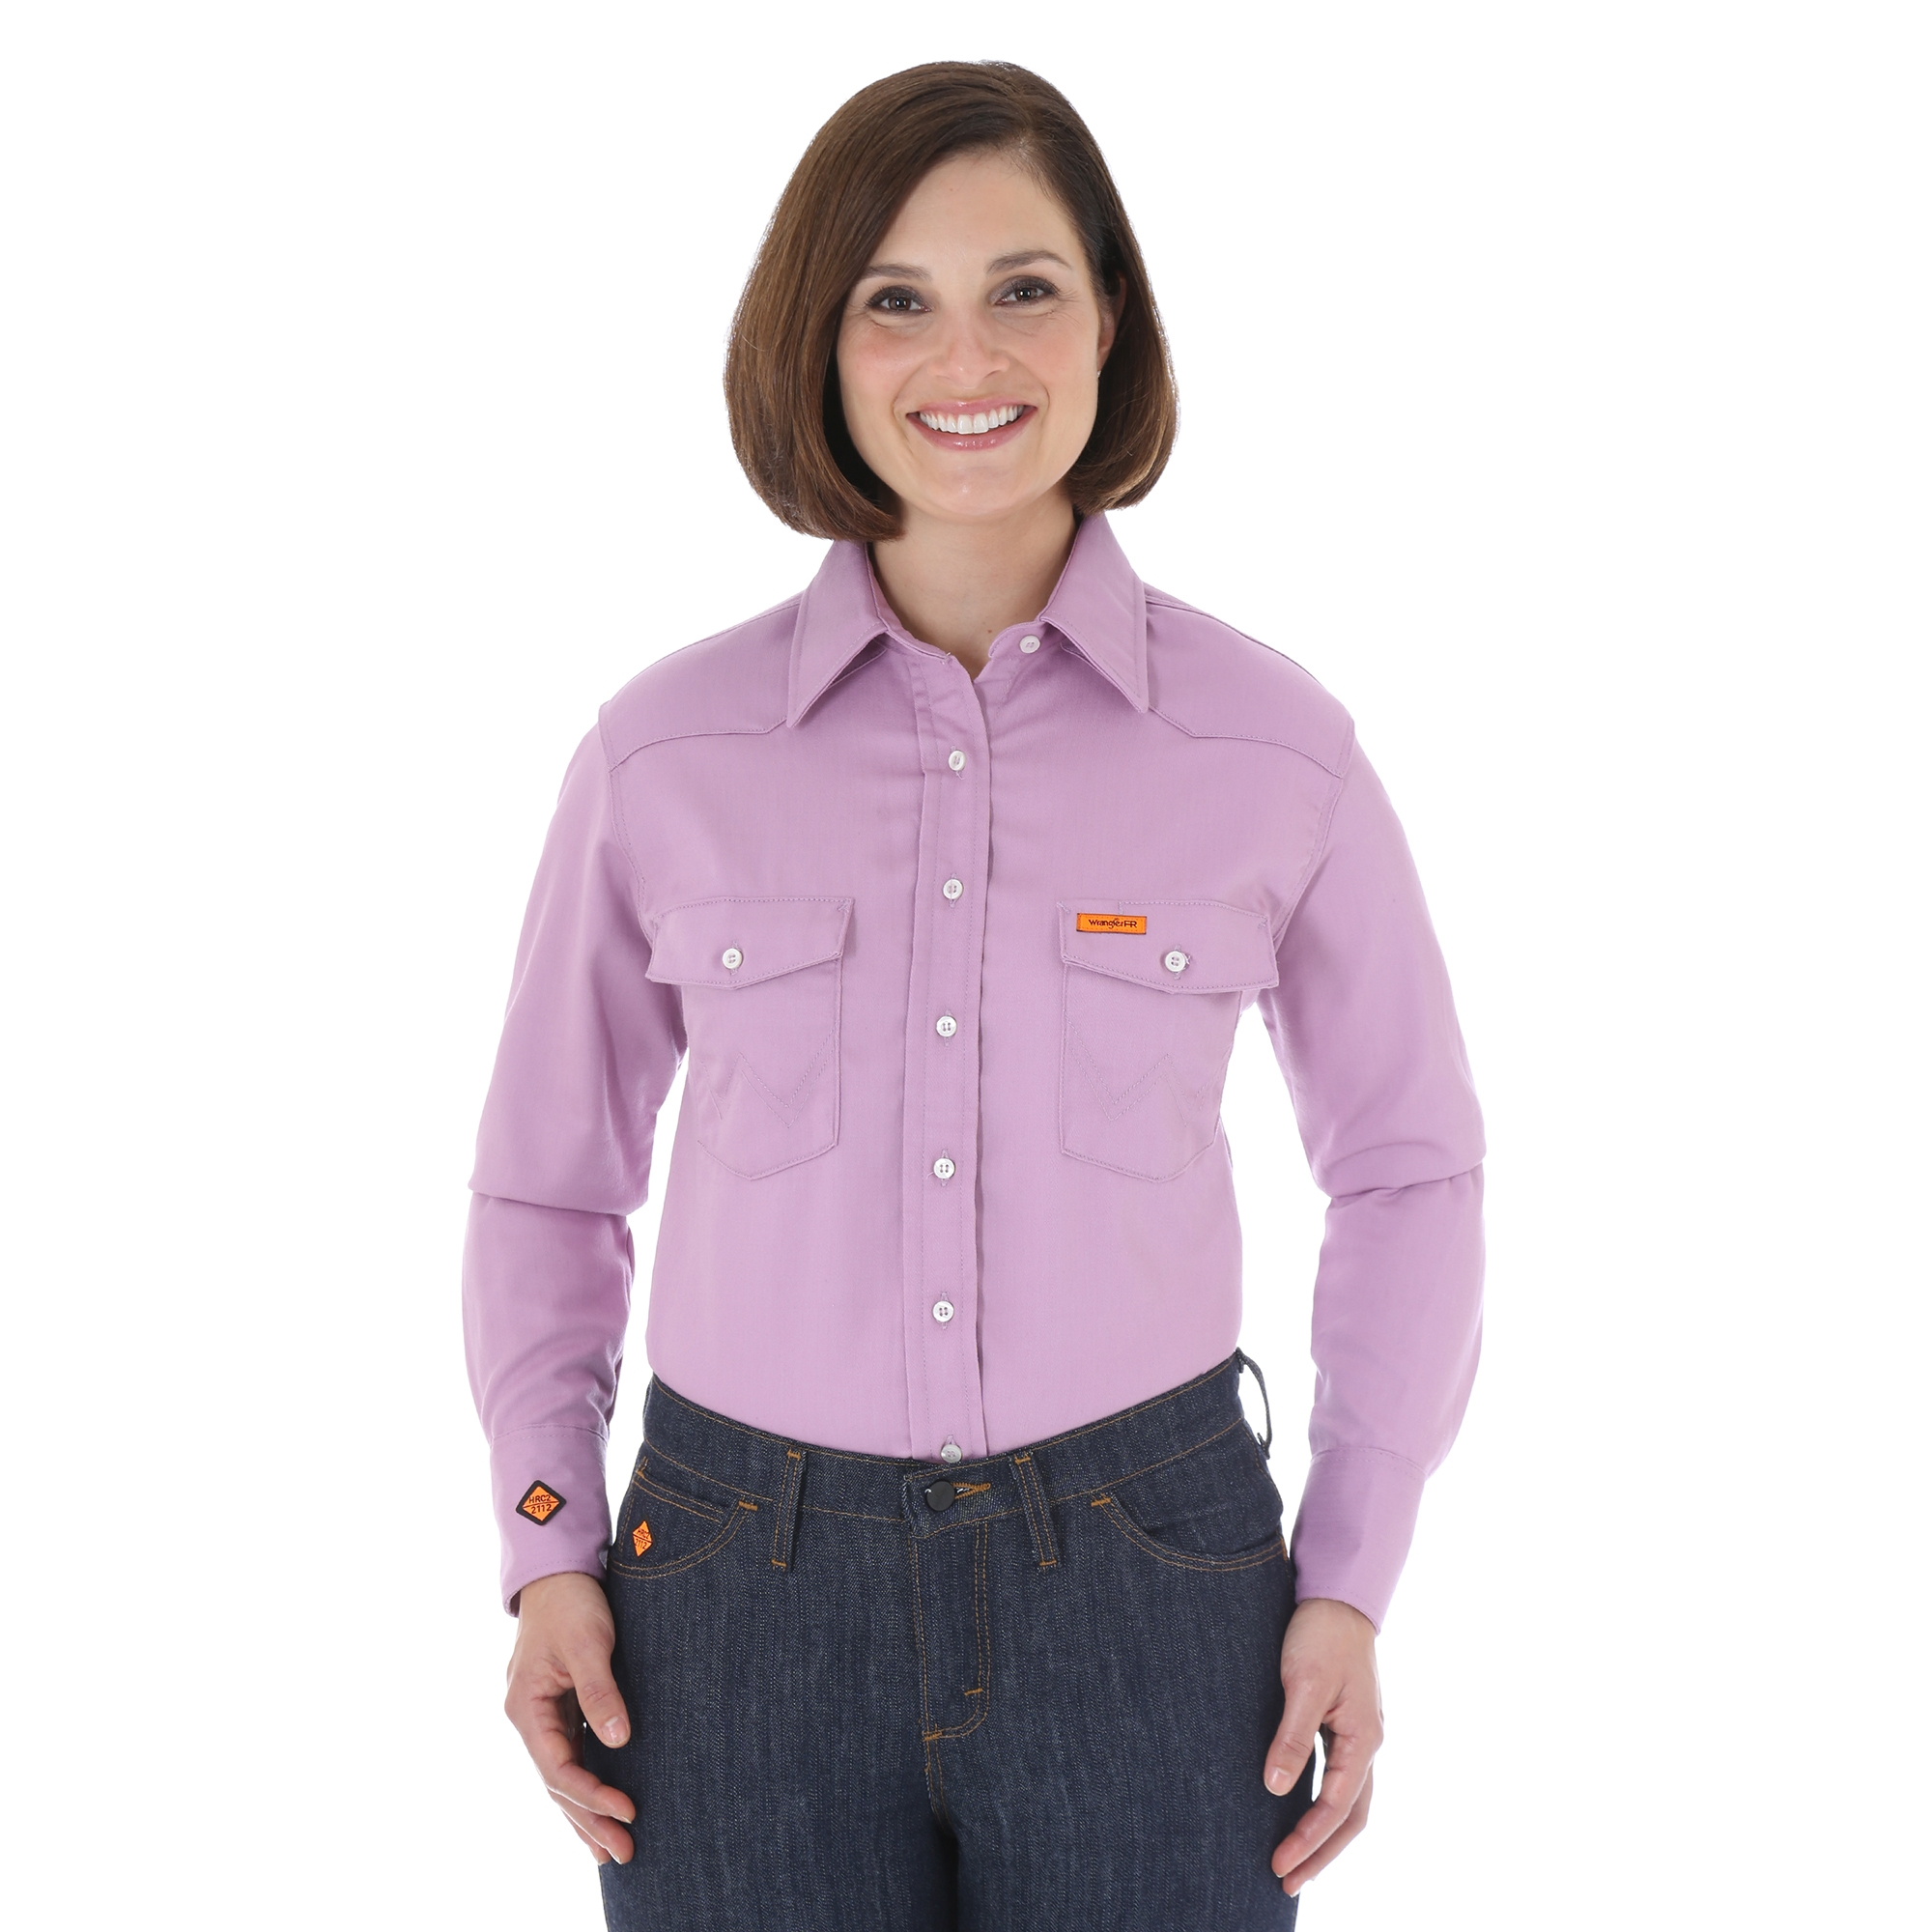 WRANGLER WOMEN'S LIGHTWEIGHT FR LONG SLEEVE SHIRT - Purple-Wrangler FR